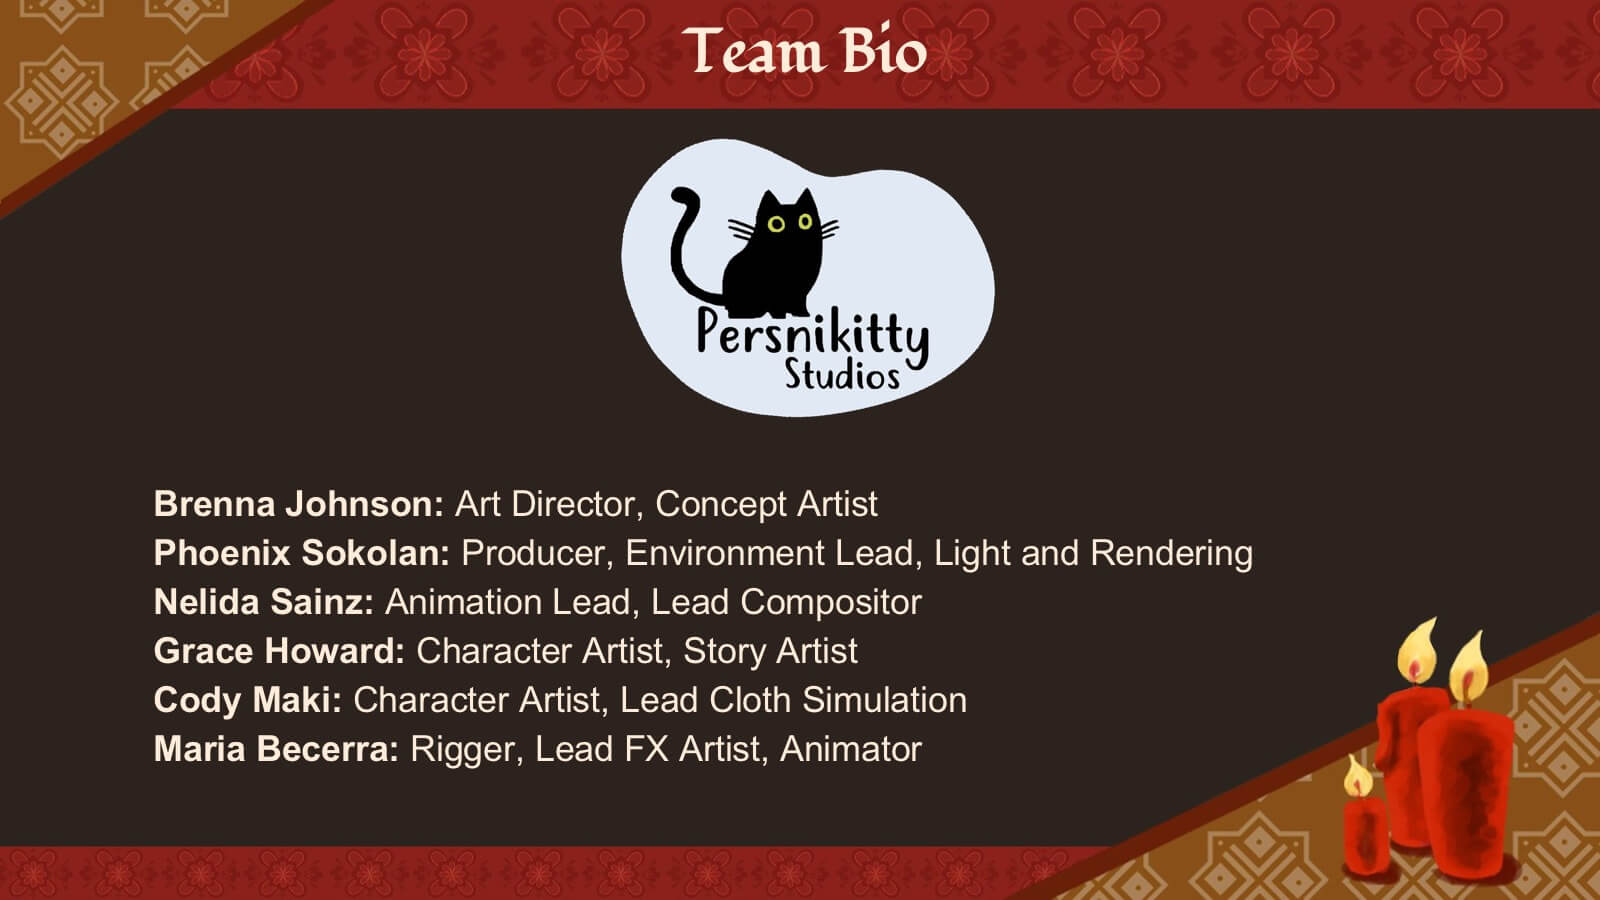 A slide displaying the names of the Pernikitty Studios team.